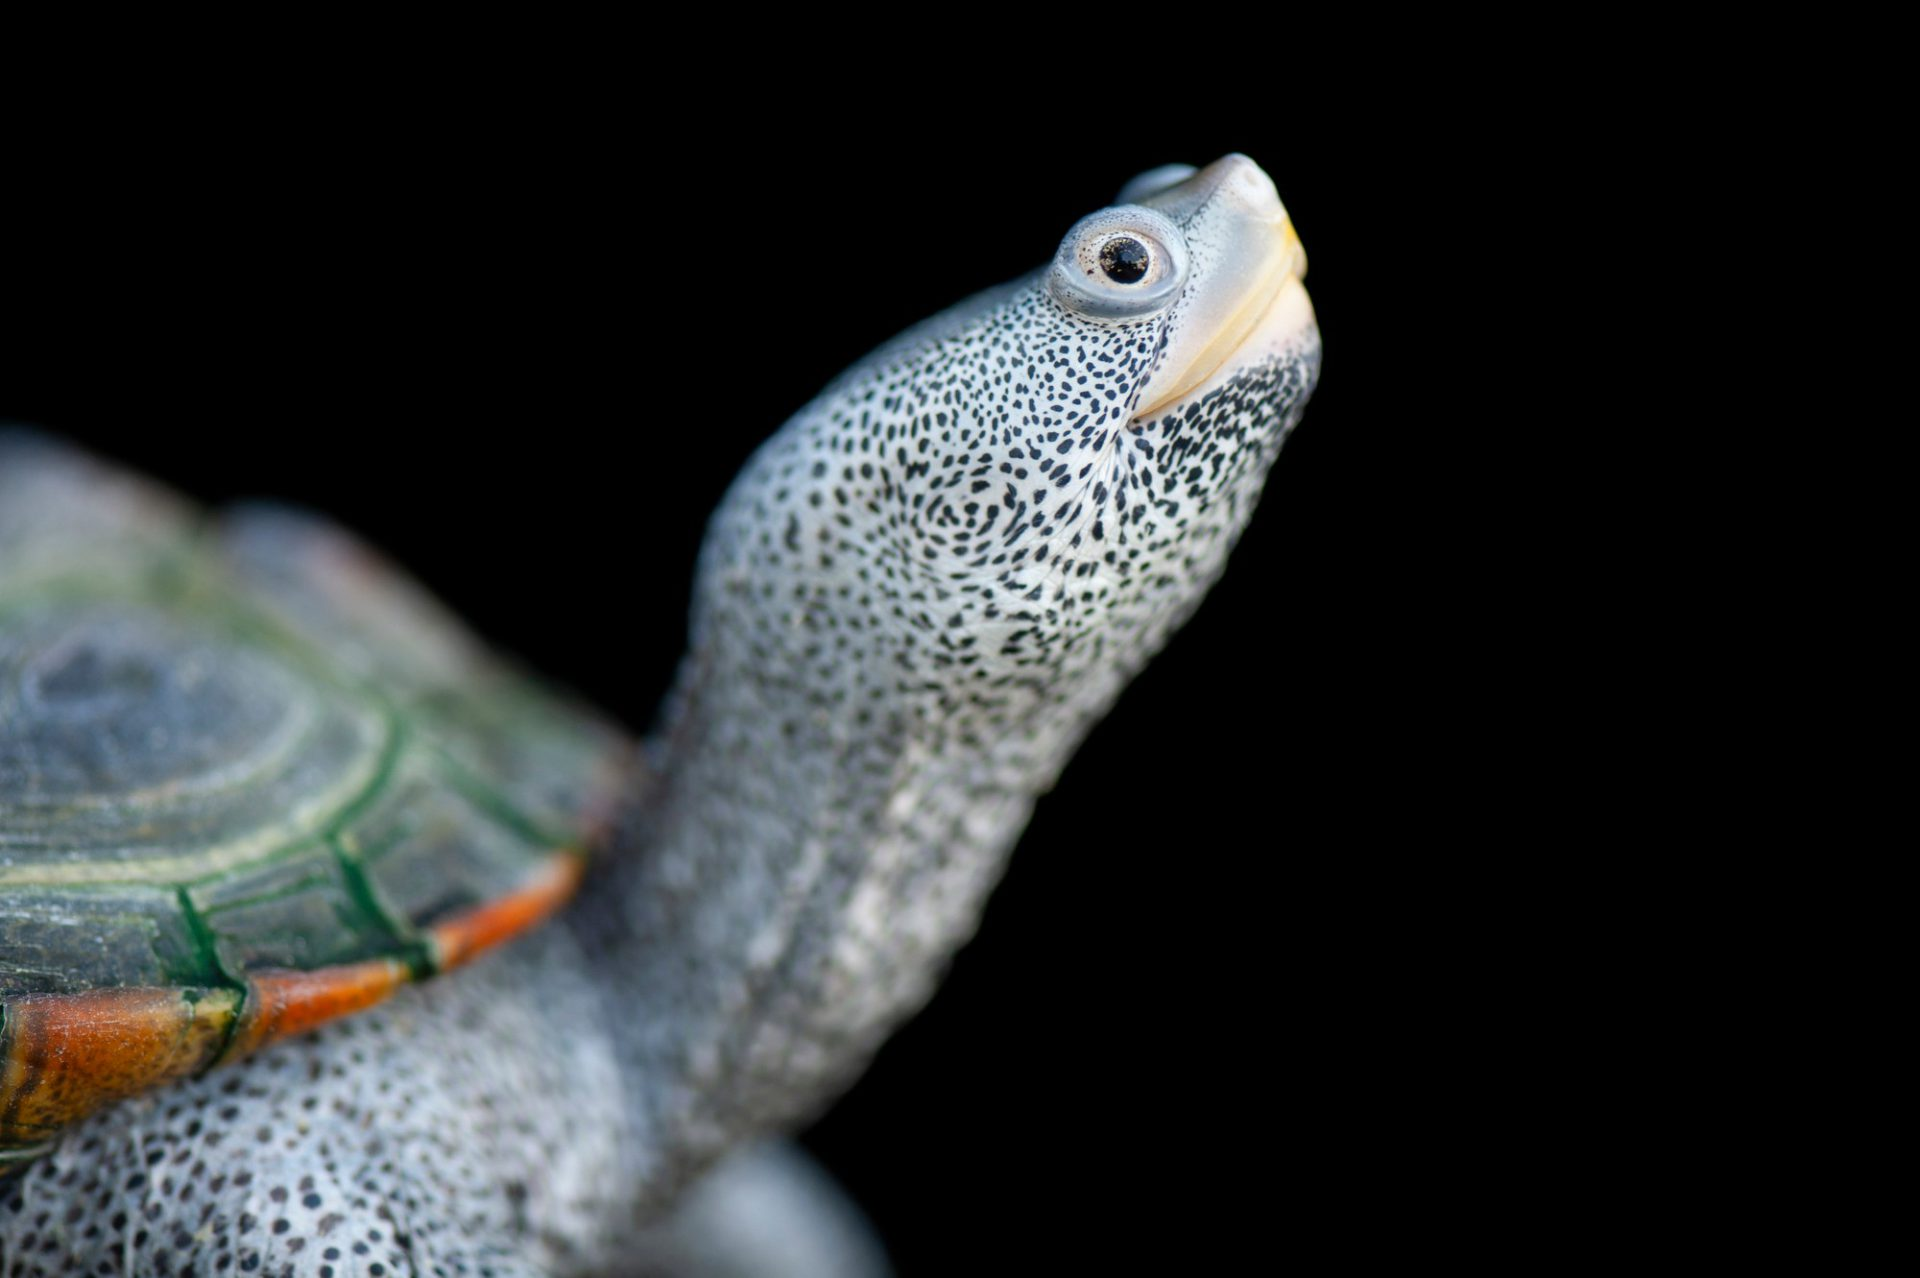 Picture of a Bermuda diamondback terrapin (Malaclemys terrapin). This may soon be designated as a separate subspecies or even a full species, and was photographed at the Bermuda Aquarium, Museum and Zoo.